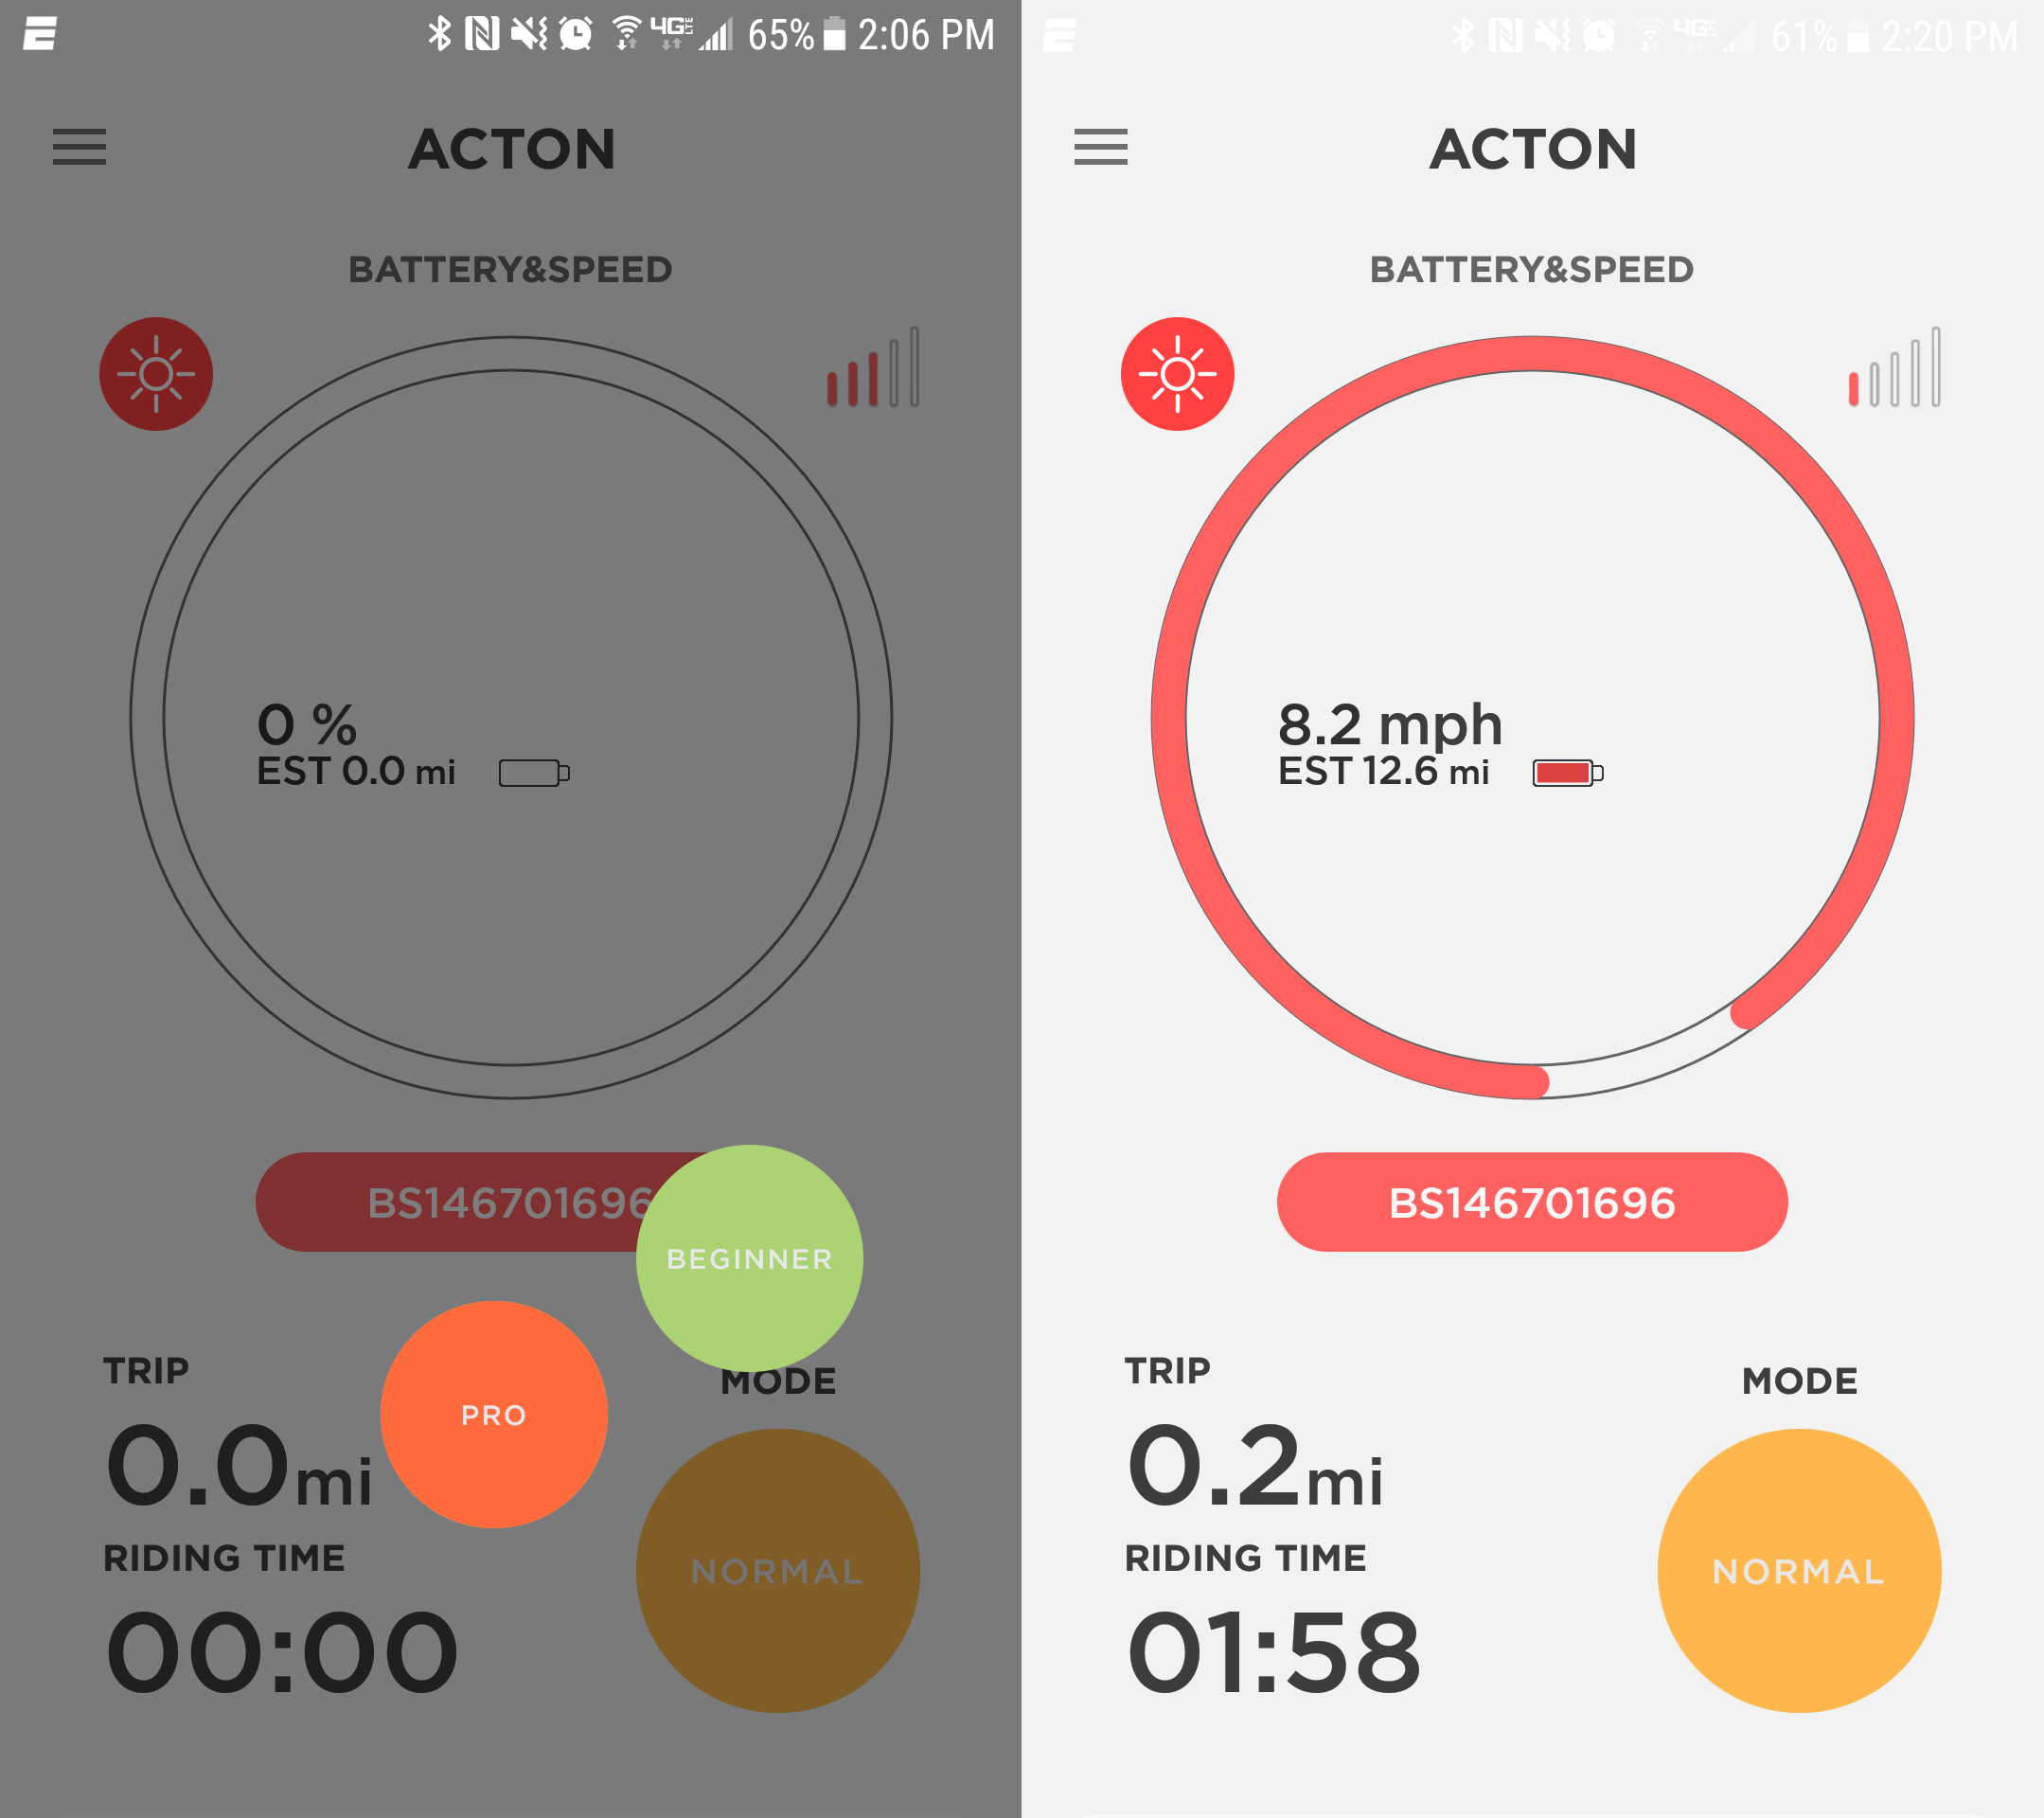 The ACTON app allows users to monitor their electric skateboard speed, distance, time, and battery via phone, or change settings.